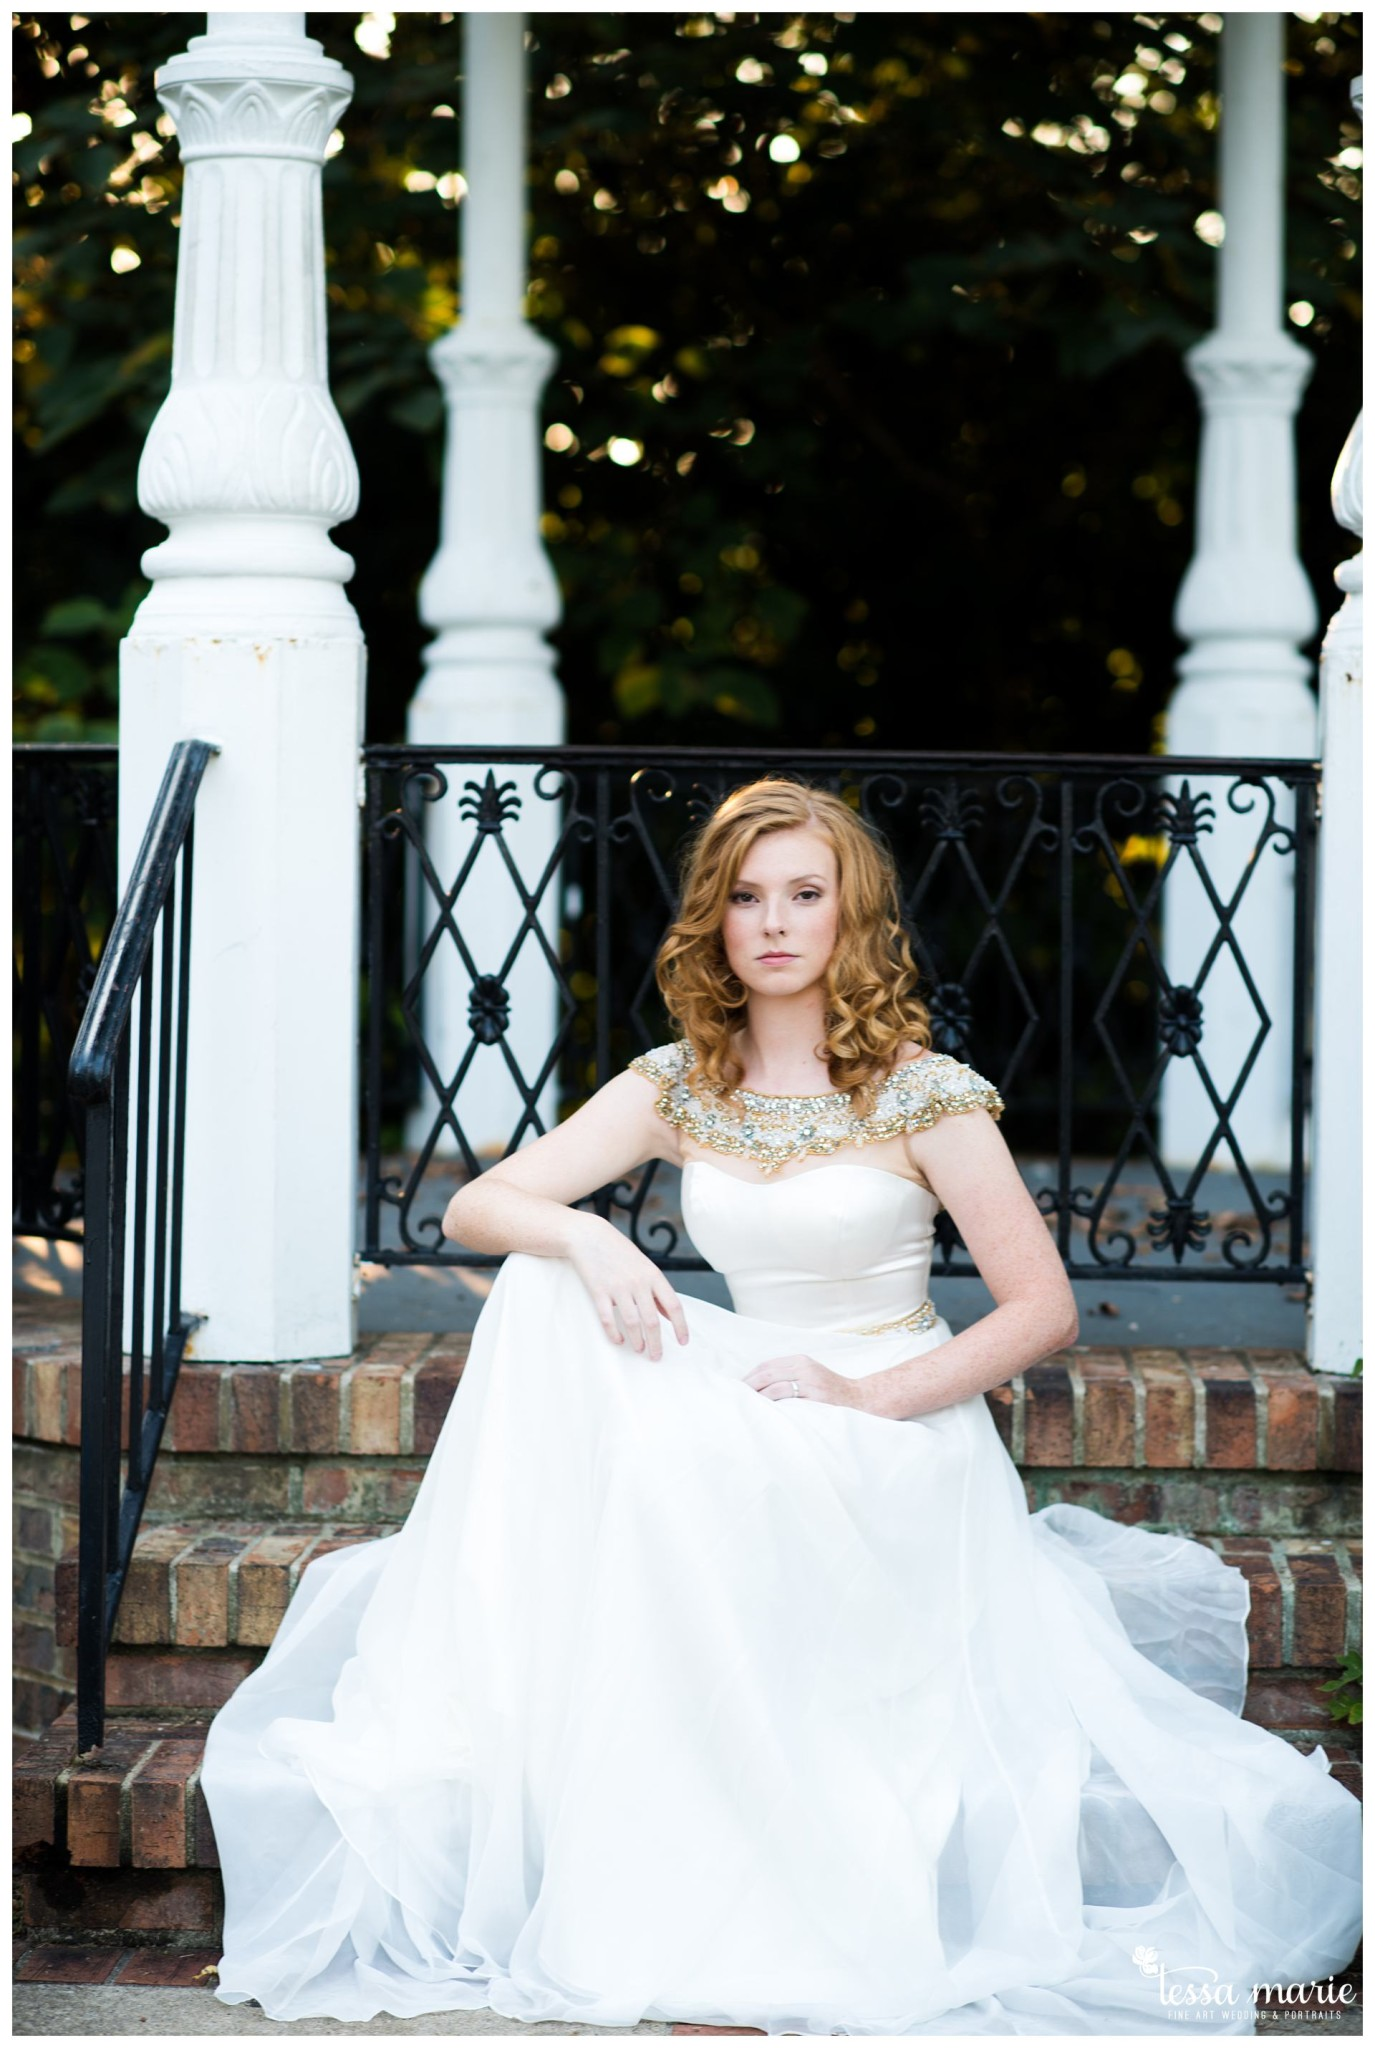 tessa_marie_weddings_legacy_story_focused_wedding_pictures_atlanta_wedding_photographer_family_pictures_portrait_Fine_art_memories_mothers_day_spring_moments_0358